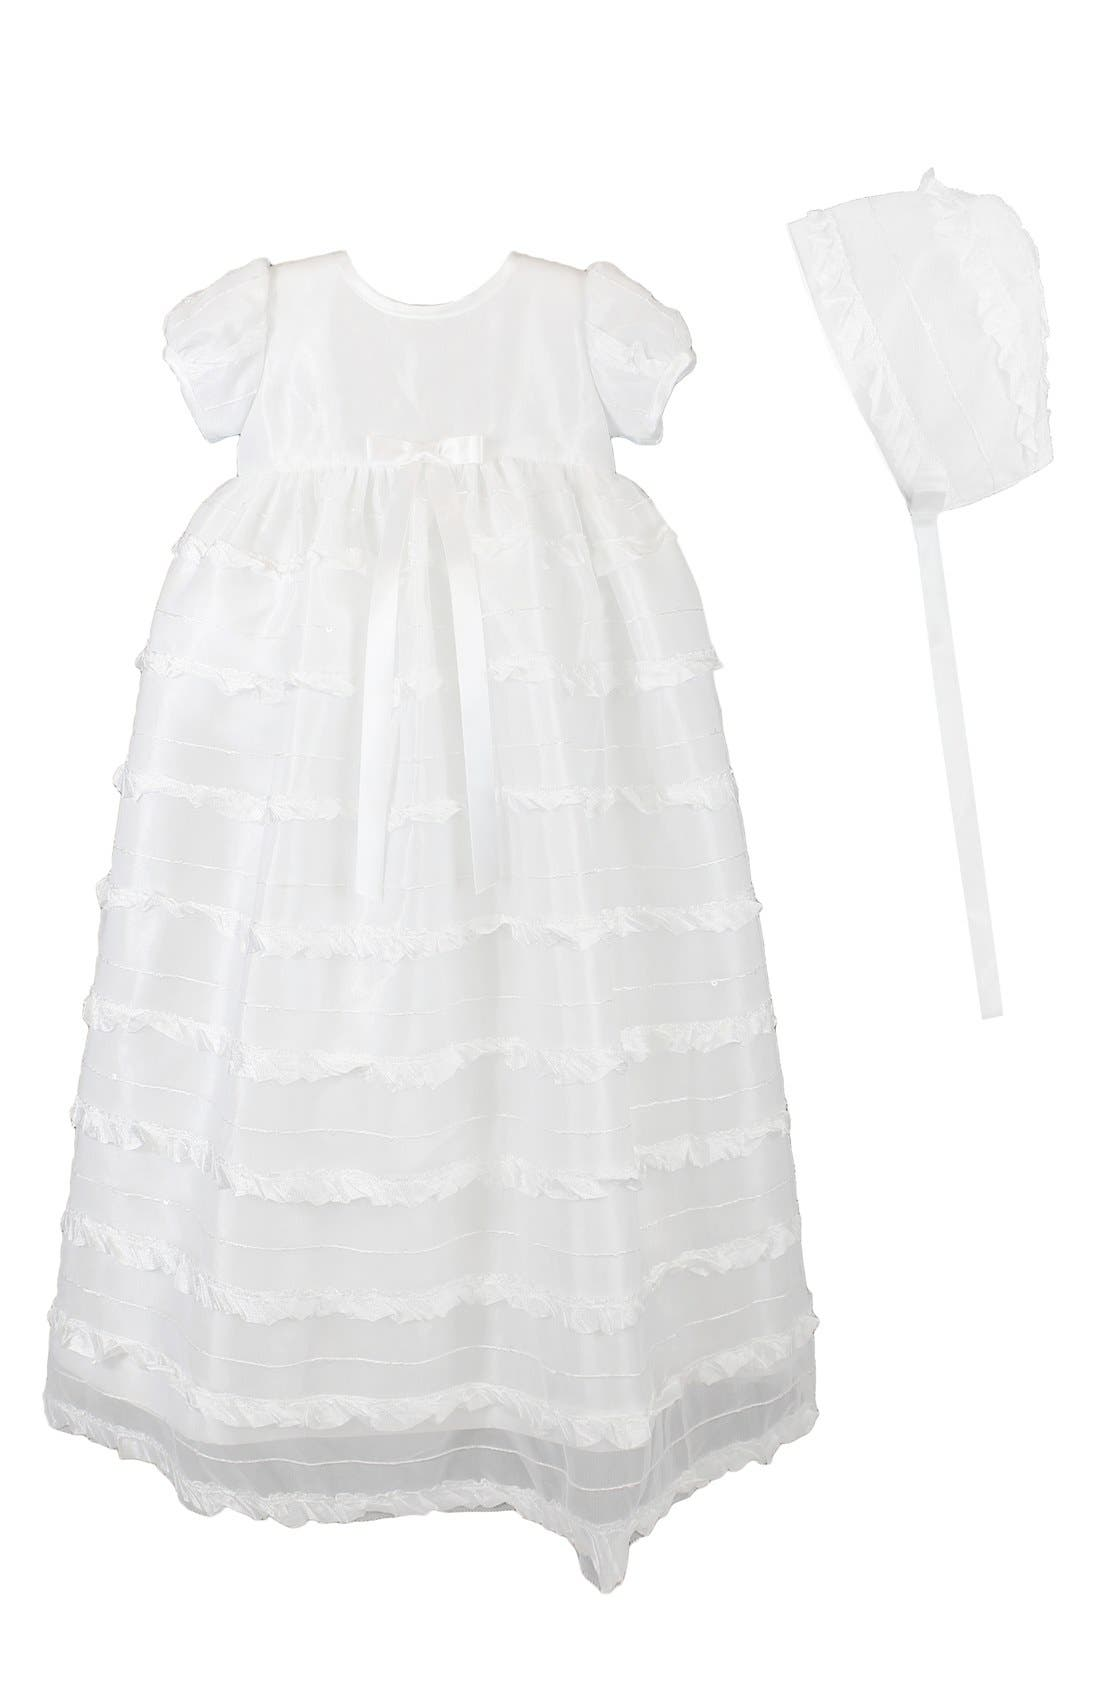 Alternate Image 1 Selected - C.I. Castro & Co 'Eyelash' Christening Gown & Bonnet (Baby Girls)